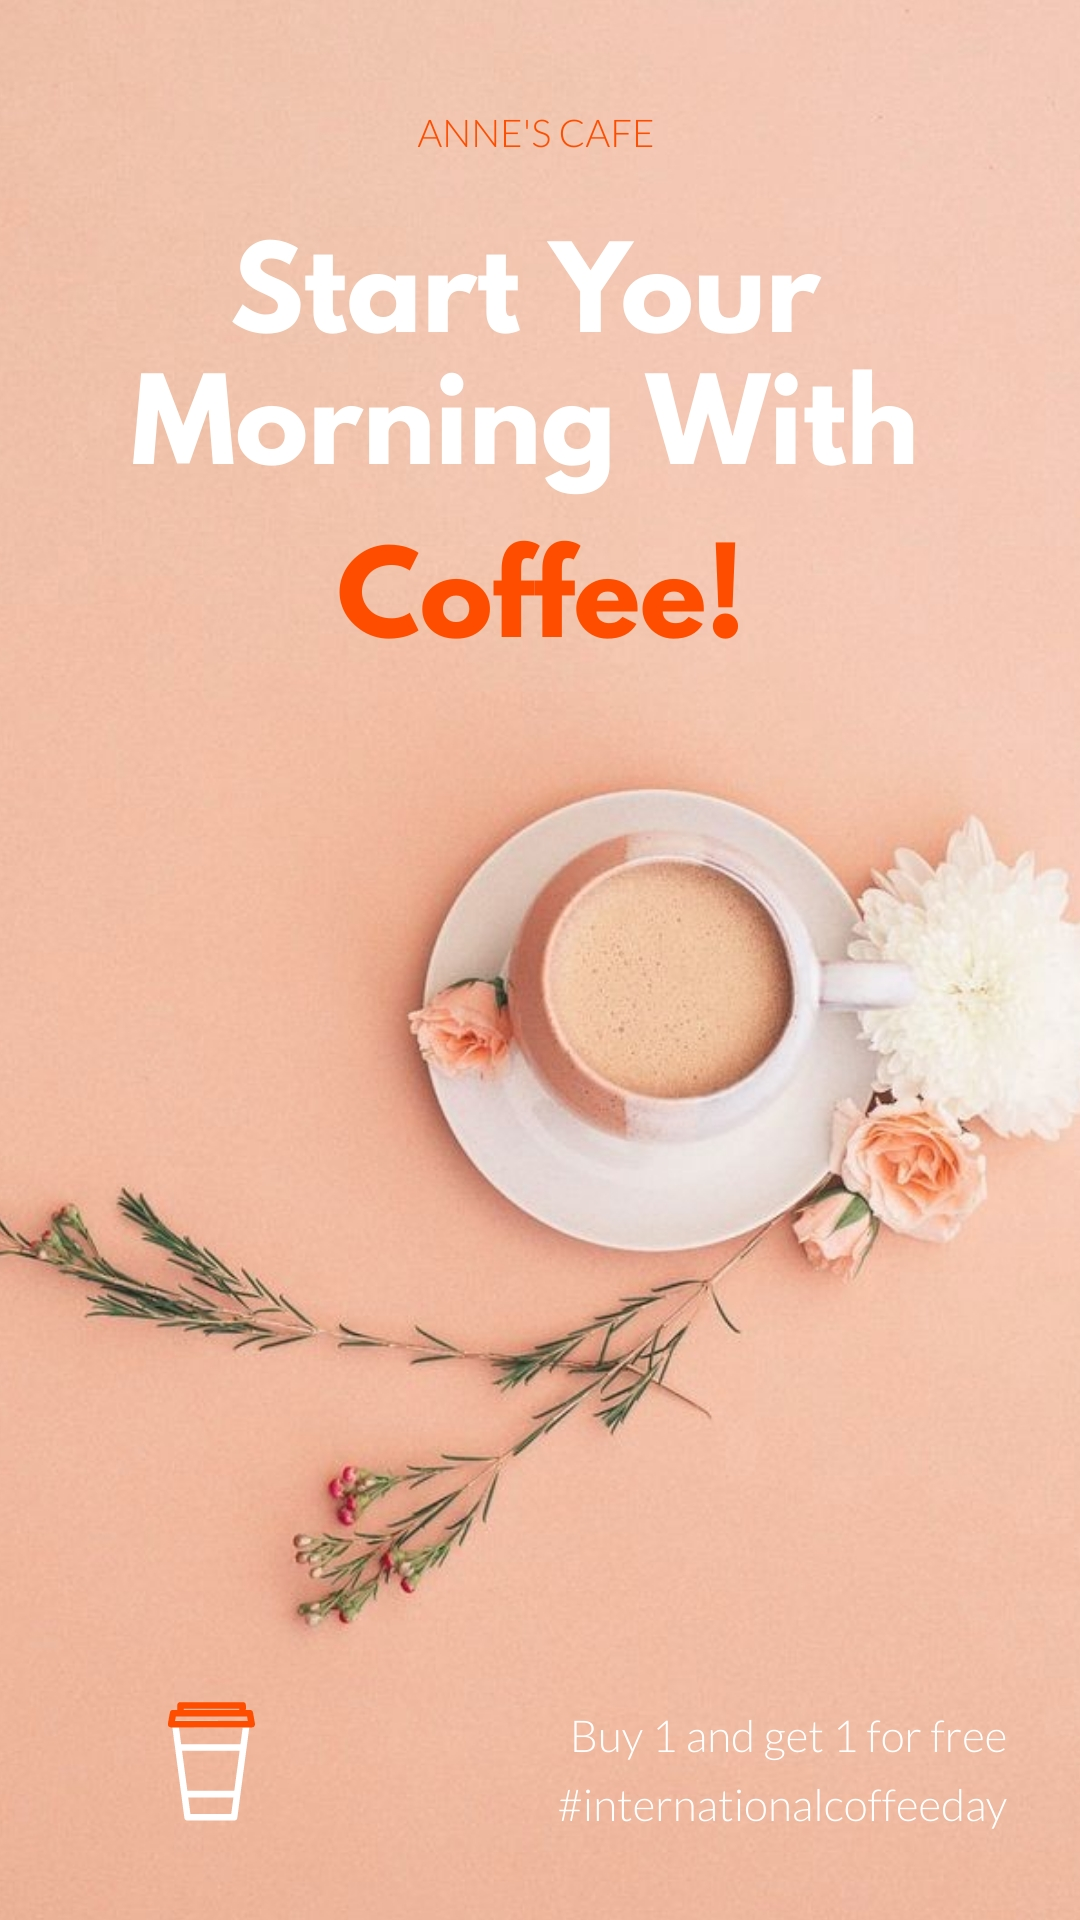 Coffee Day Offer Animated Vertical Template